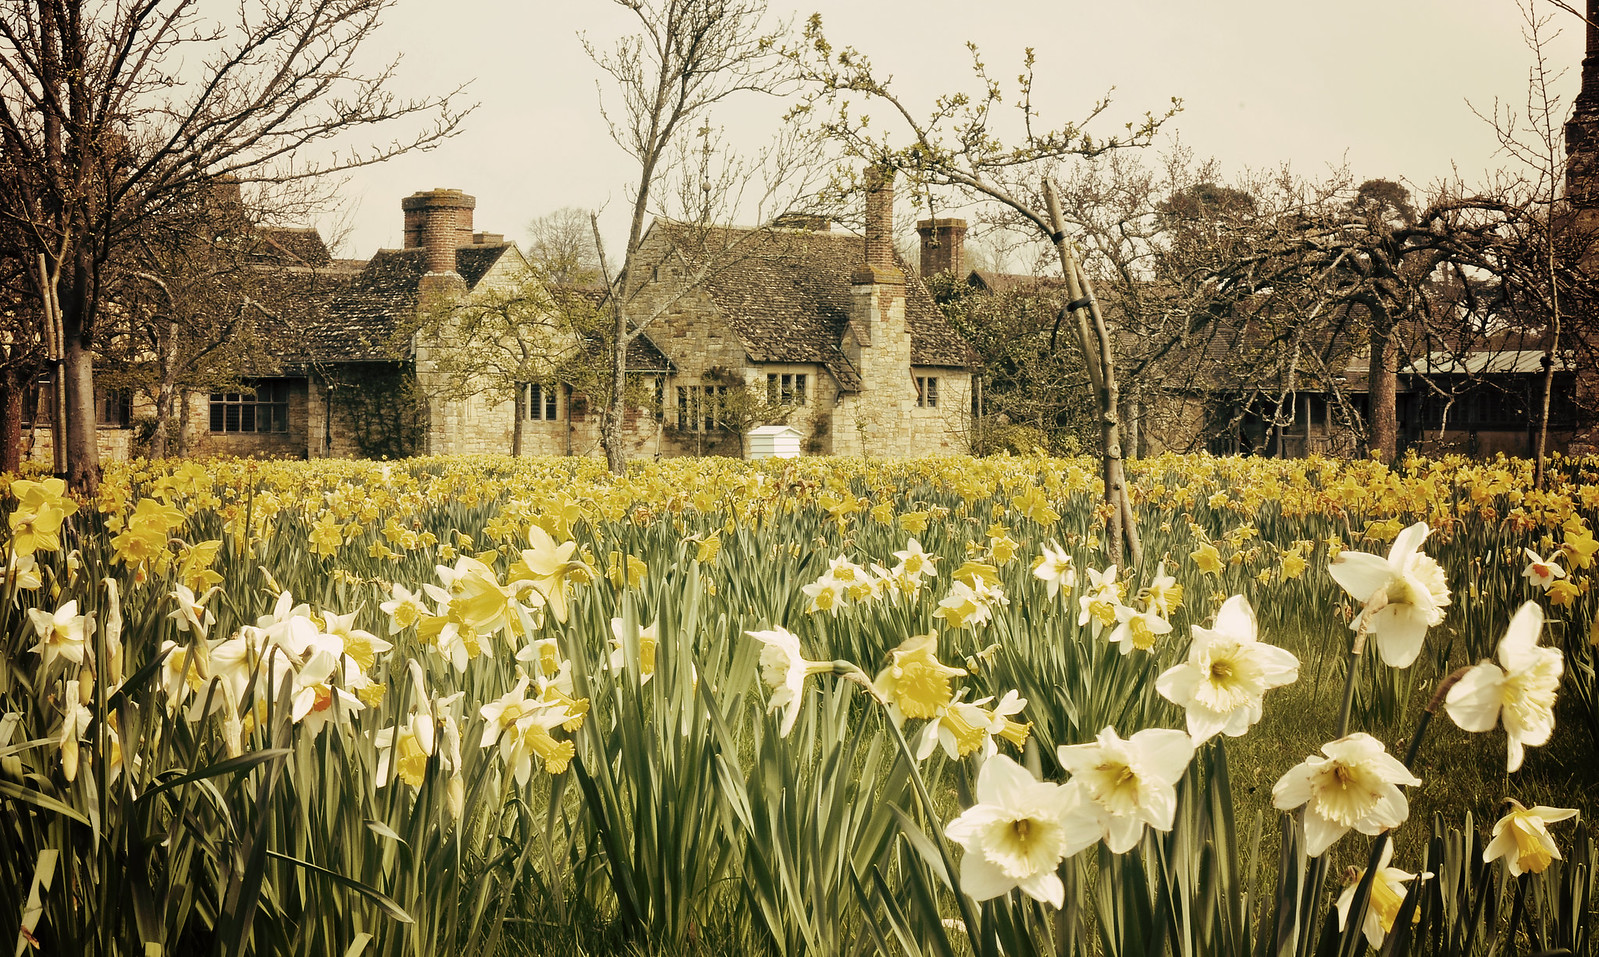 Sea of yellow and white A beautiful carpet of daffodils to the side of Hever Castle.